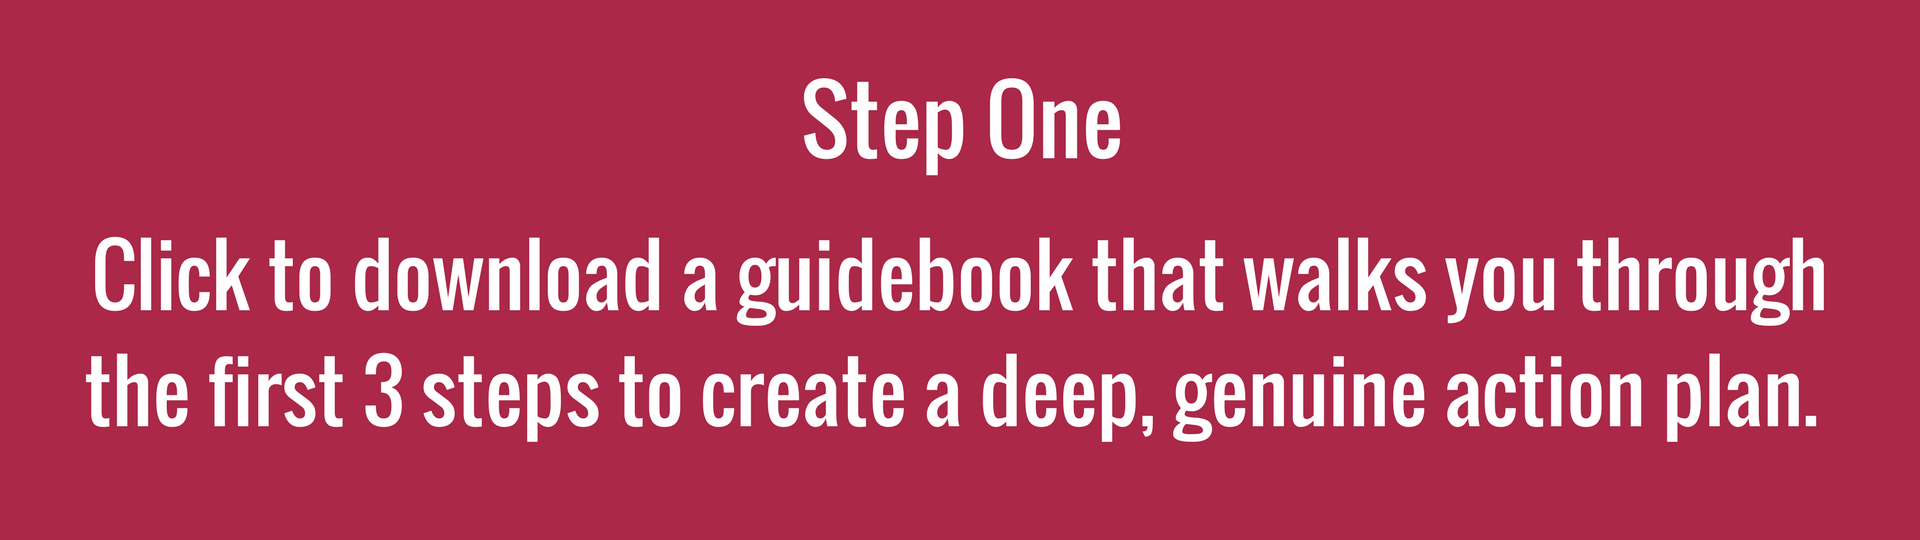 Click to download a workbook that walks you through the first 3 steps to create a deep, genuine action plan..png